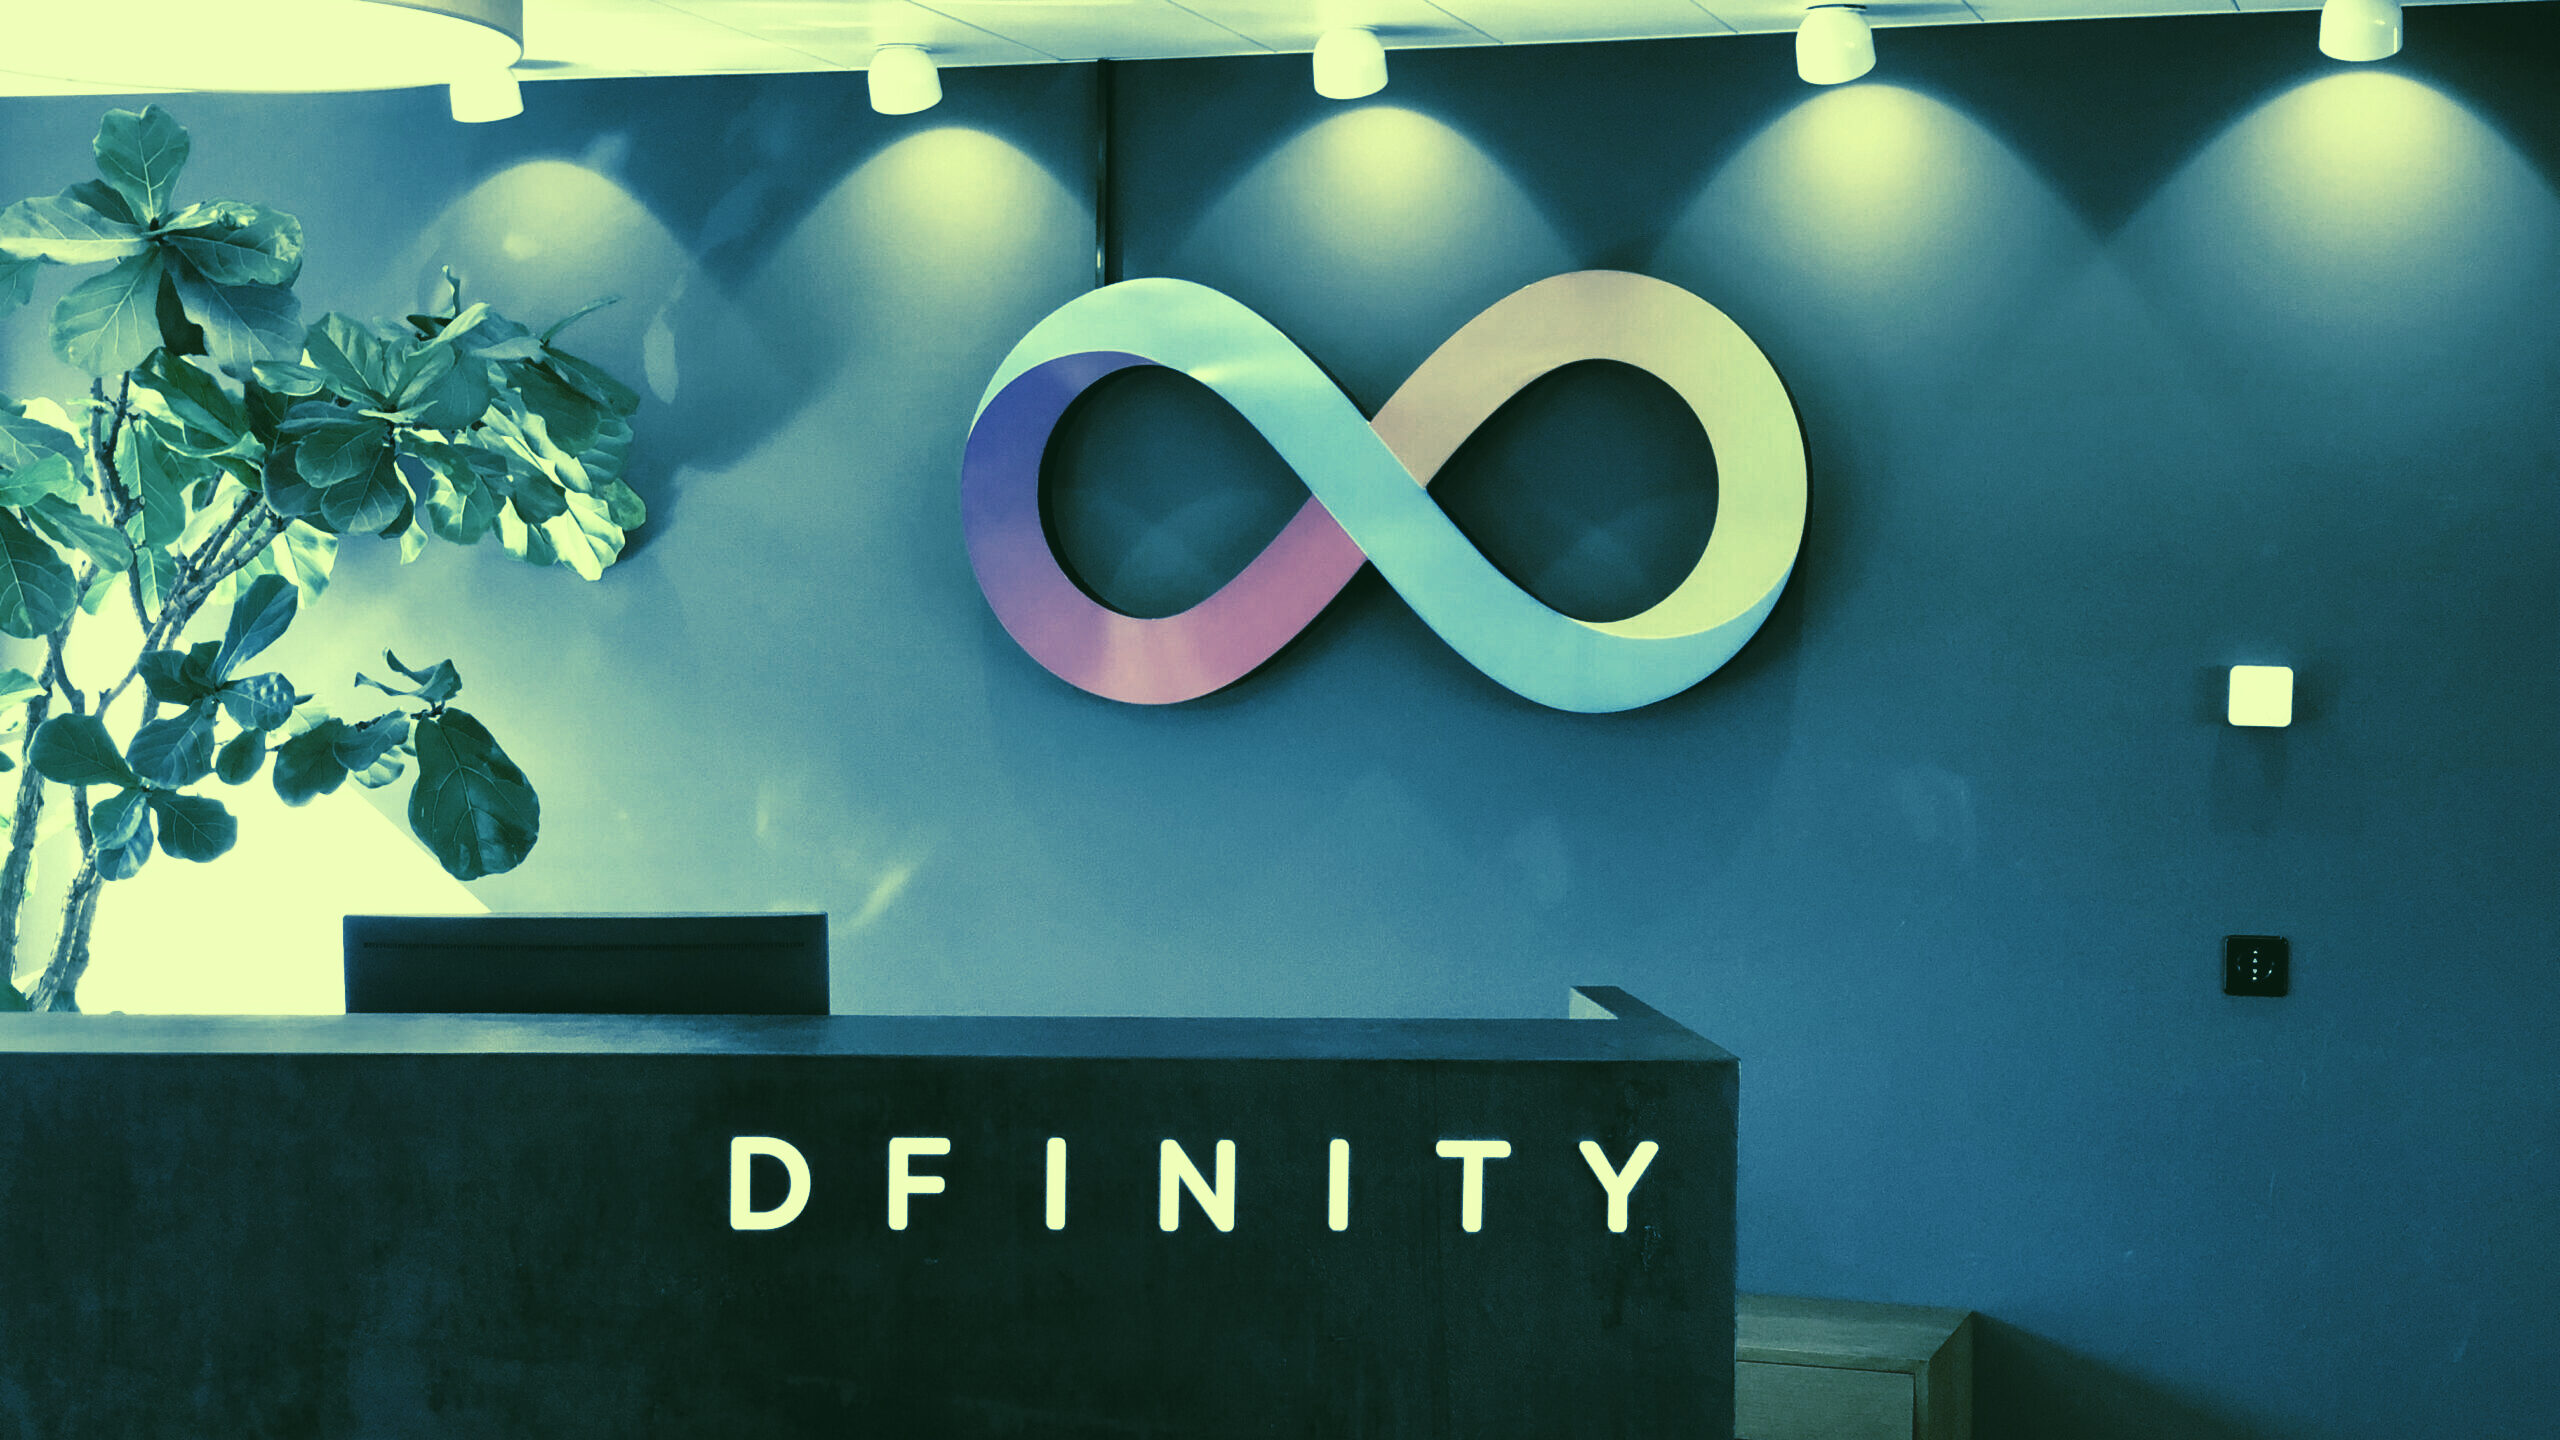 Dfinity Faces Class-Action Lawsuit Claiming ICP Token Is Unregistered Security